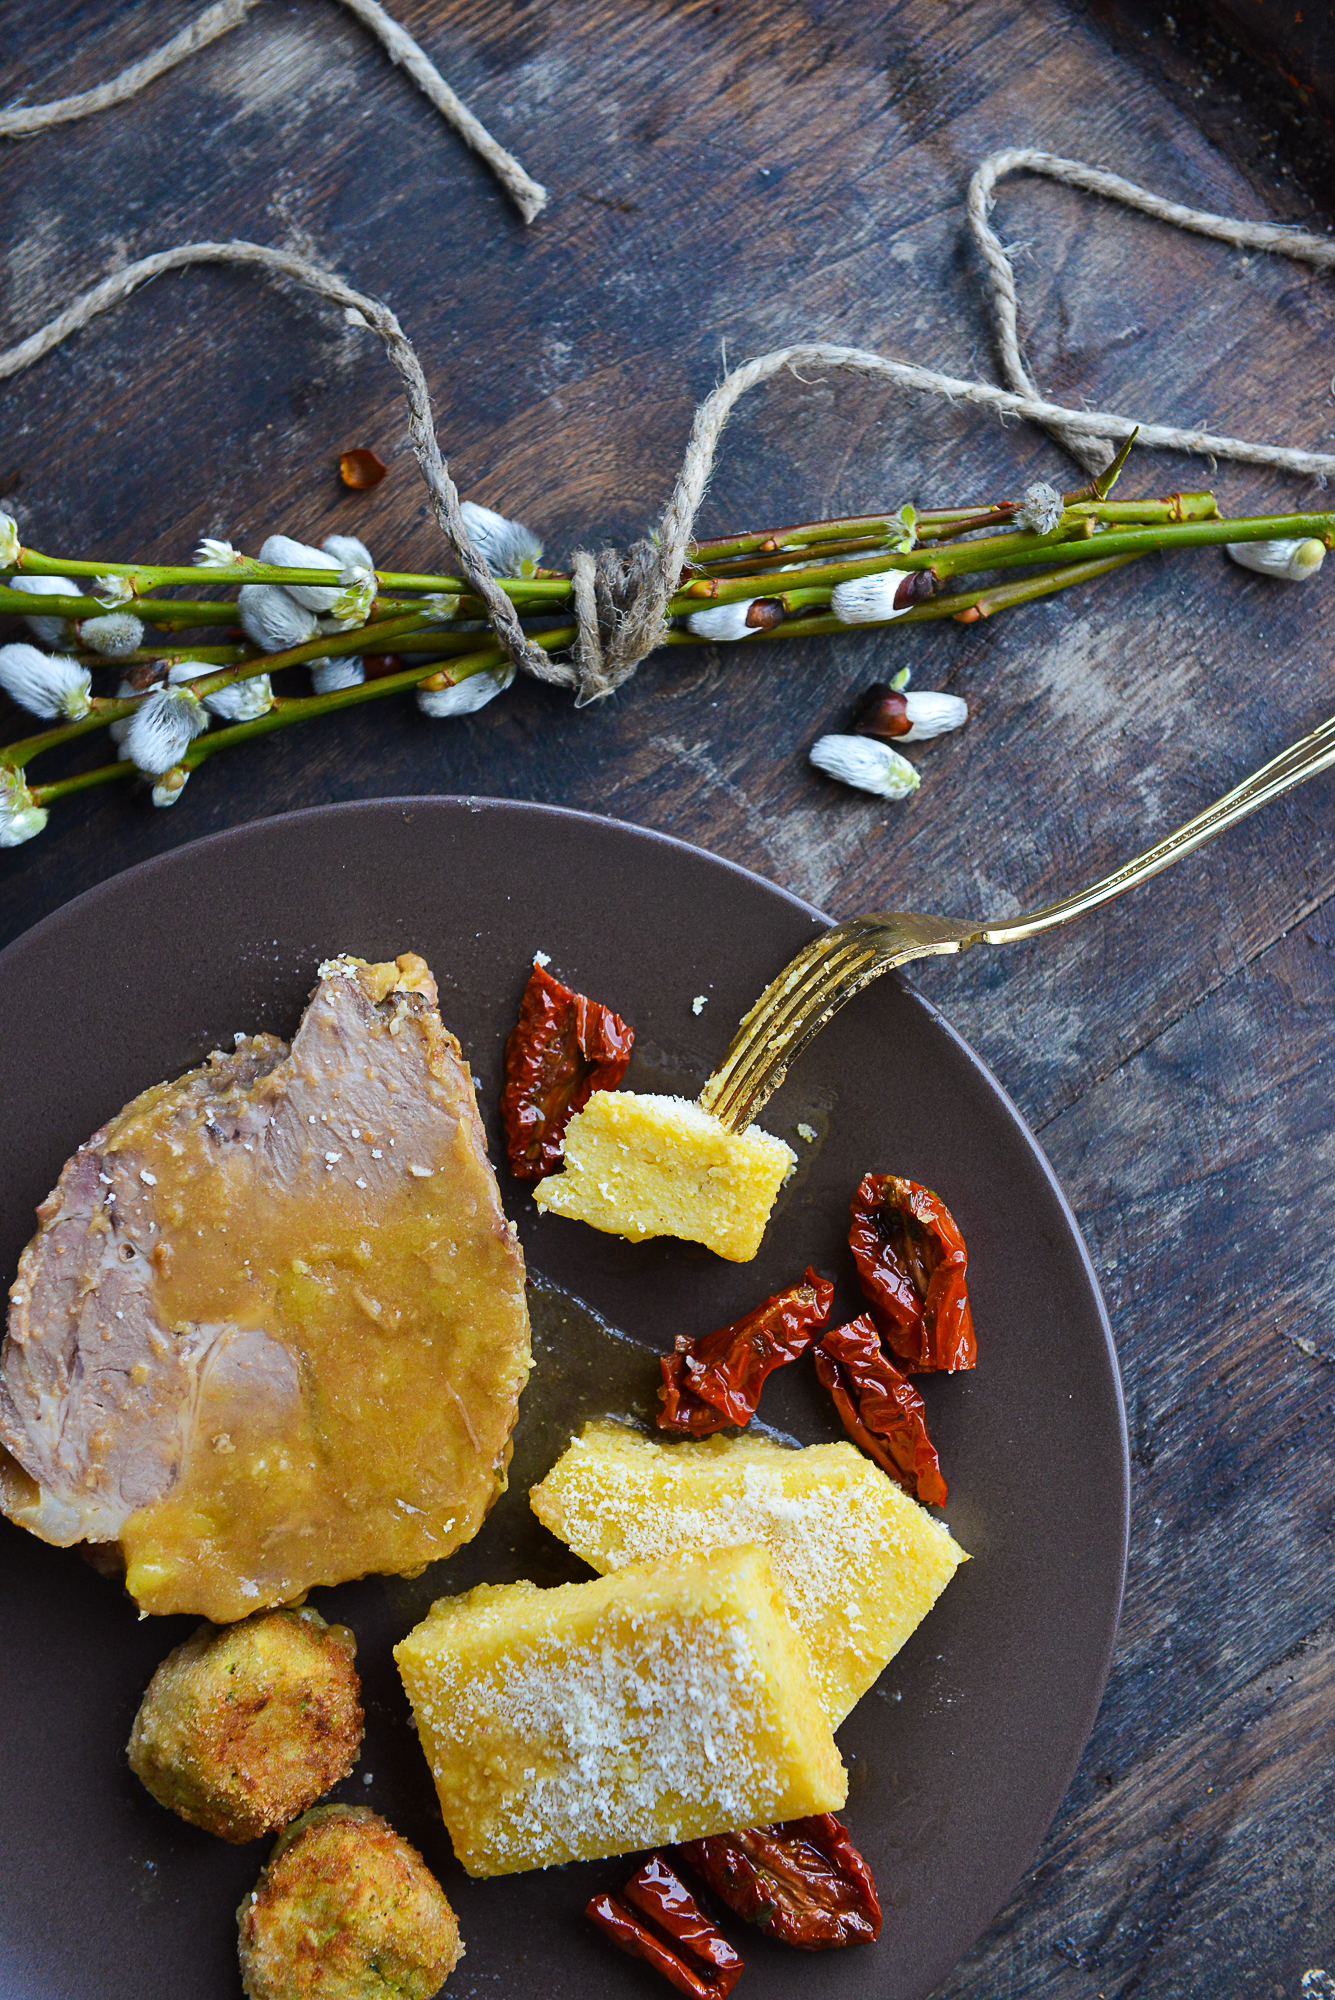 Food styling and food photography